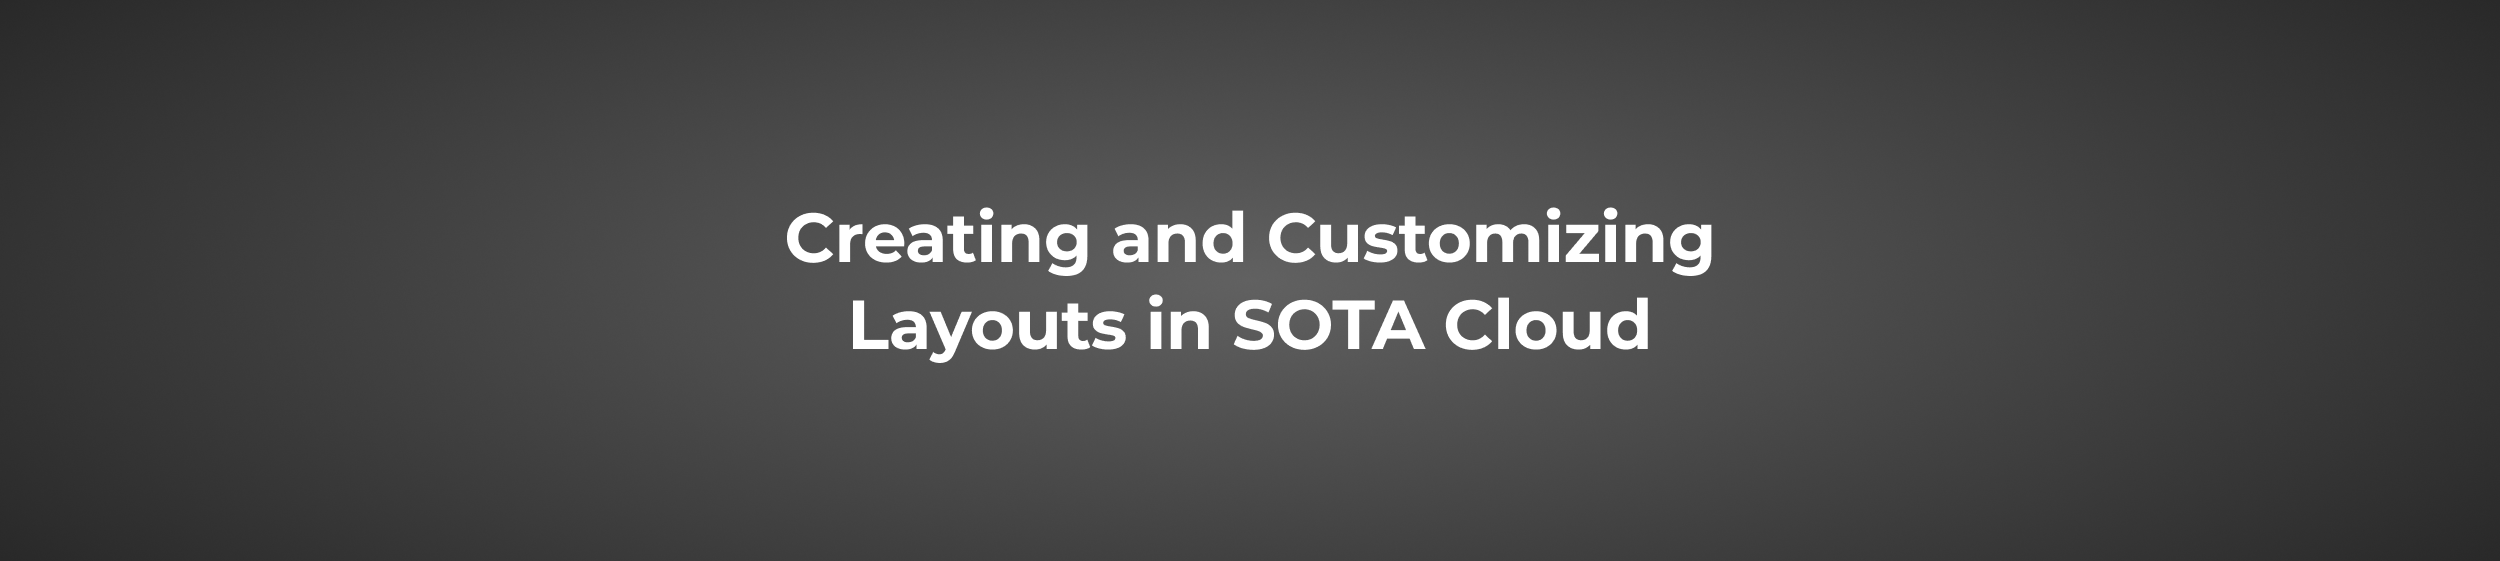 Creating and customizing layouts in SOTA Cloud dental imaging software